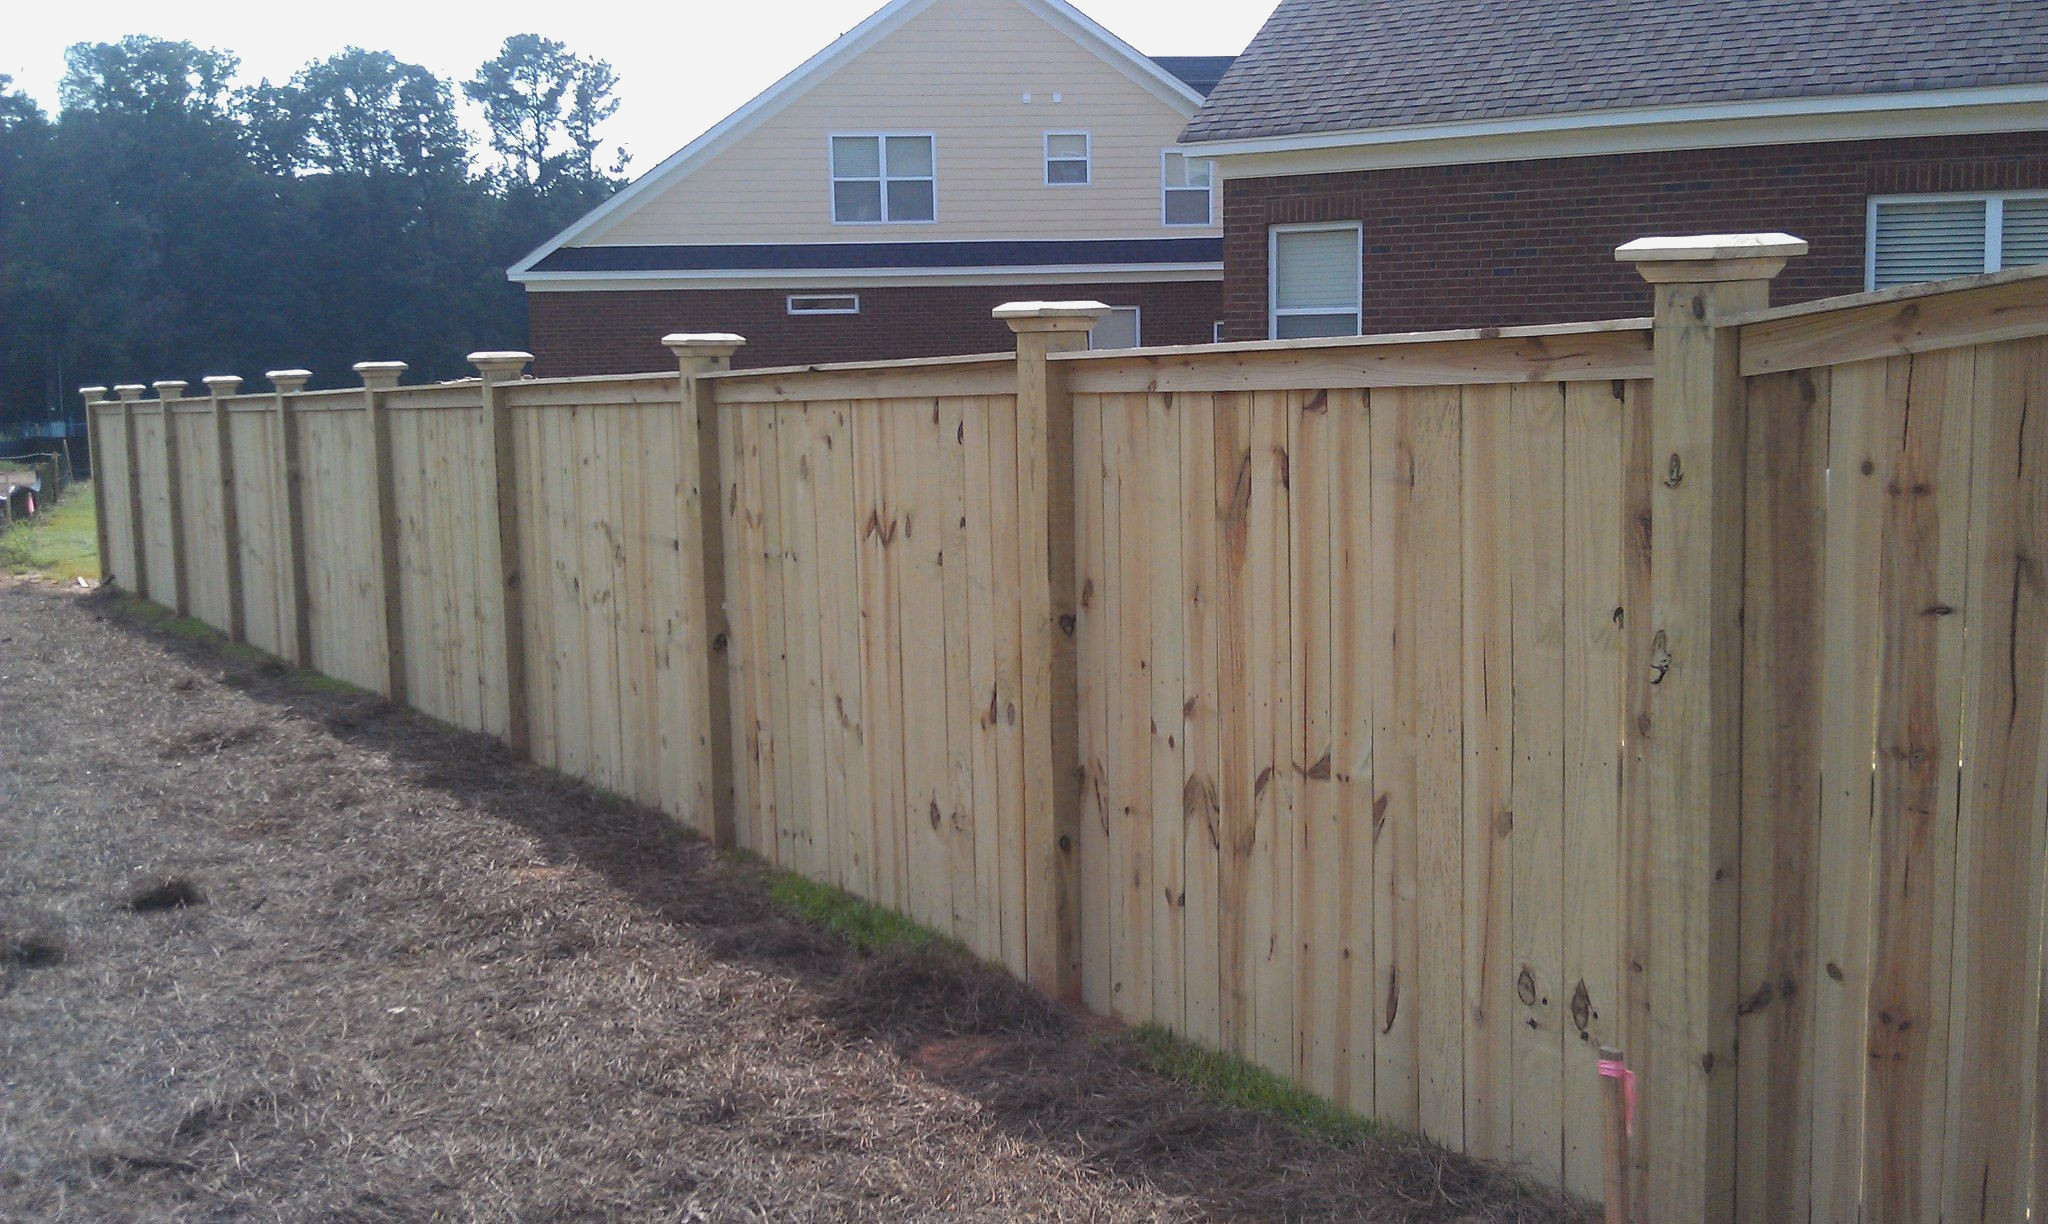 New How Much To Put Up A Fence In Backyard Design Decorating Cool On for 16 Genius Ways How to Make How Much To Put Up A Fence In Backyard